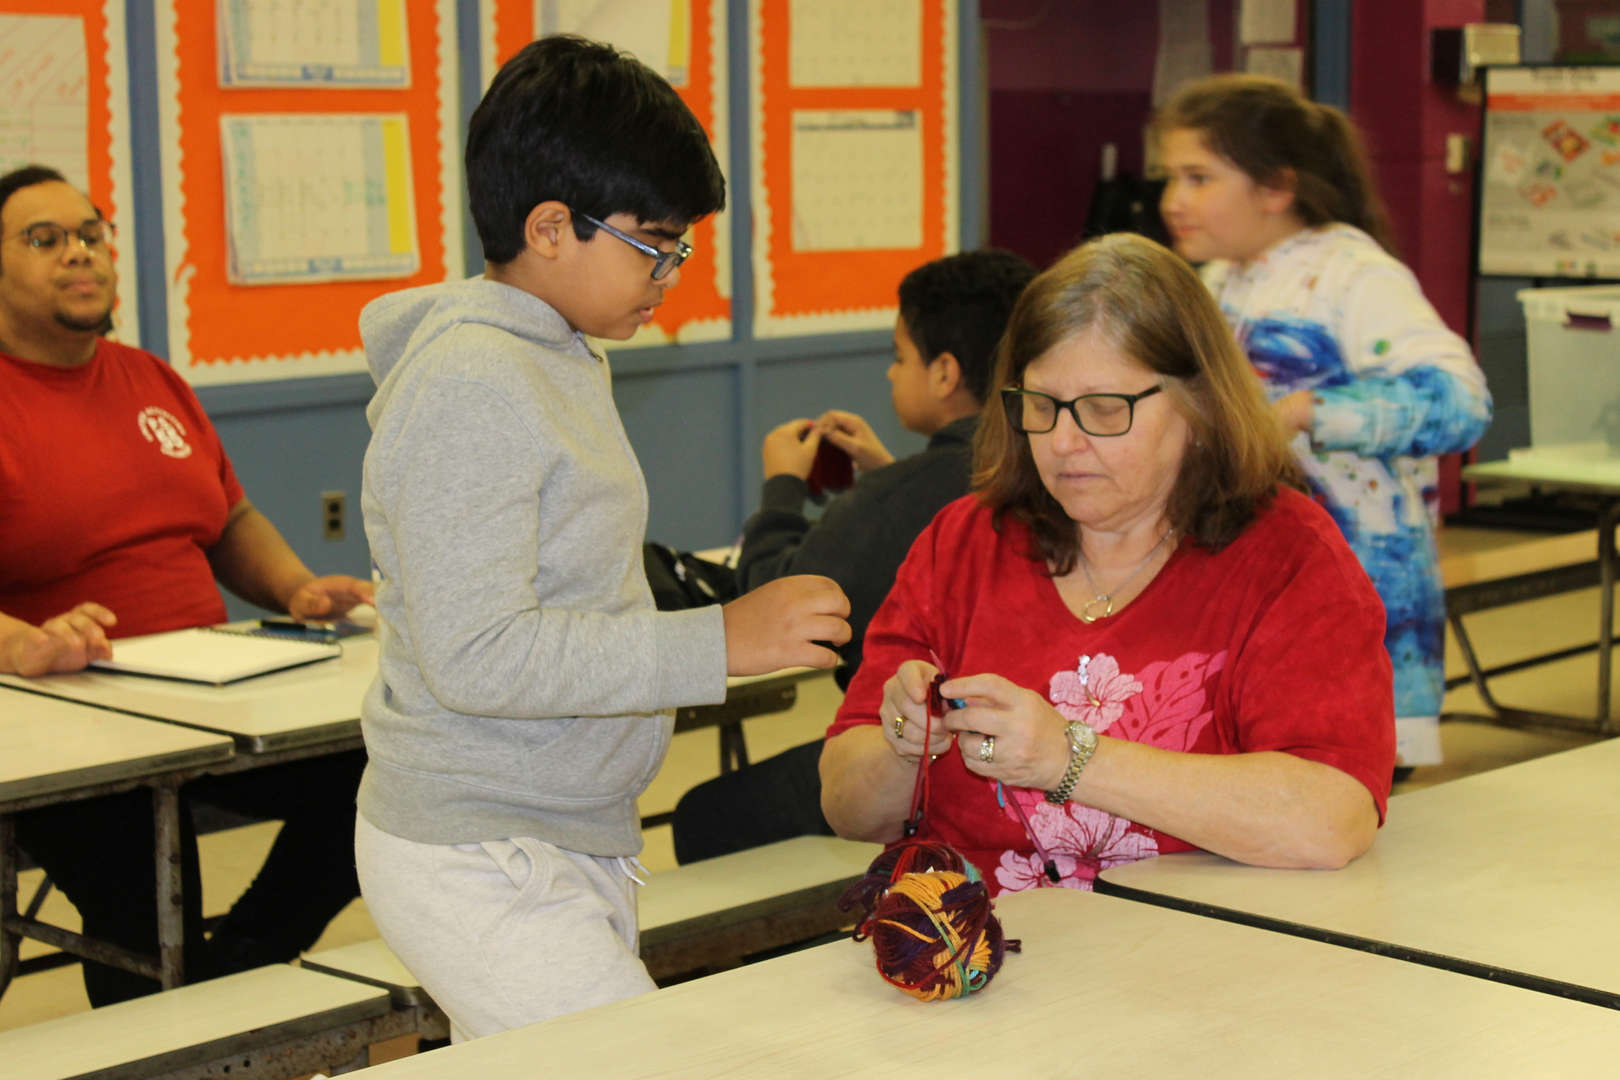 Mrs. Fishman being coached as she tries knitting